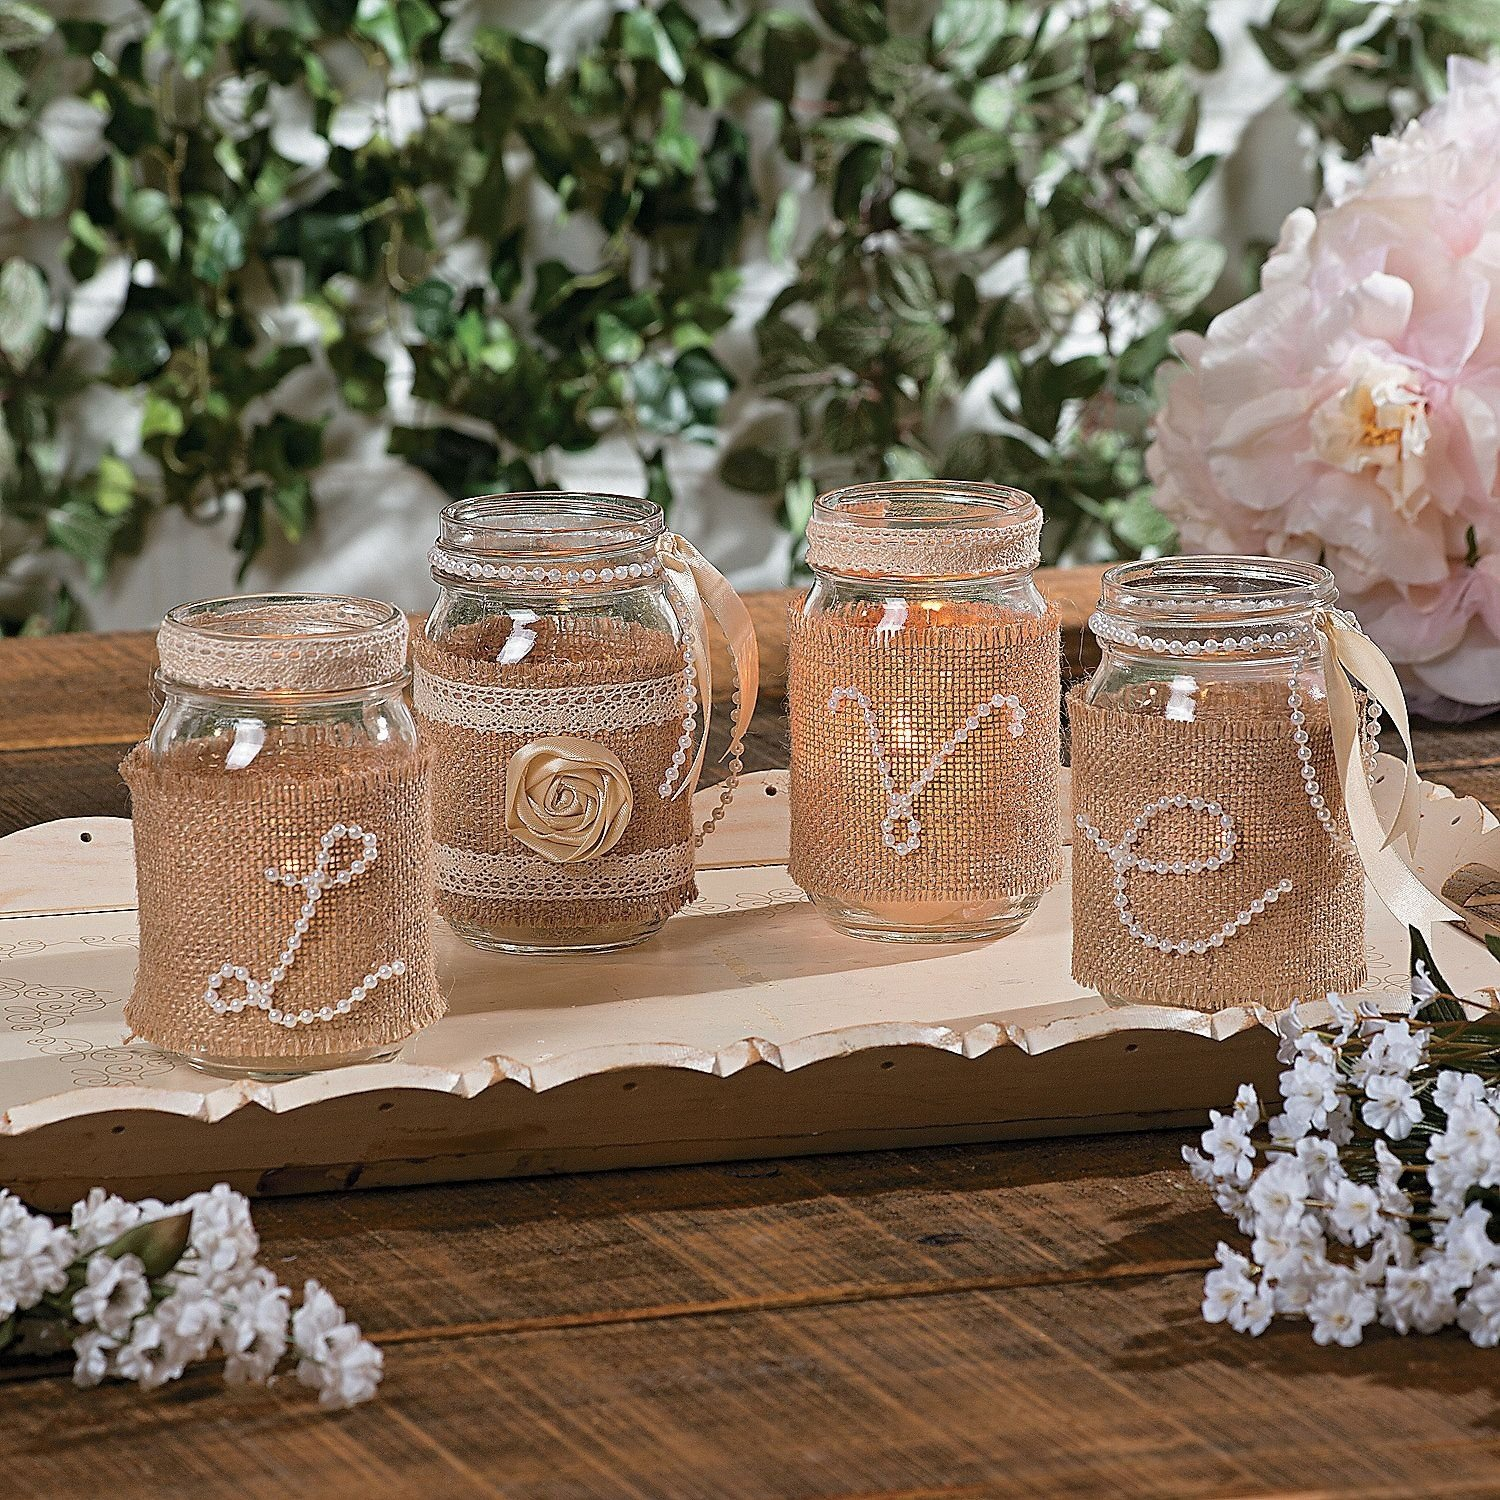 10 Stylish Mason Jar Wedding Centerpiece Ideas diy wedding centerpieces using pearls burlap ribbon and mason 1 2020